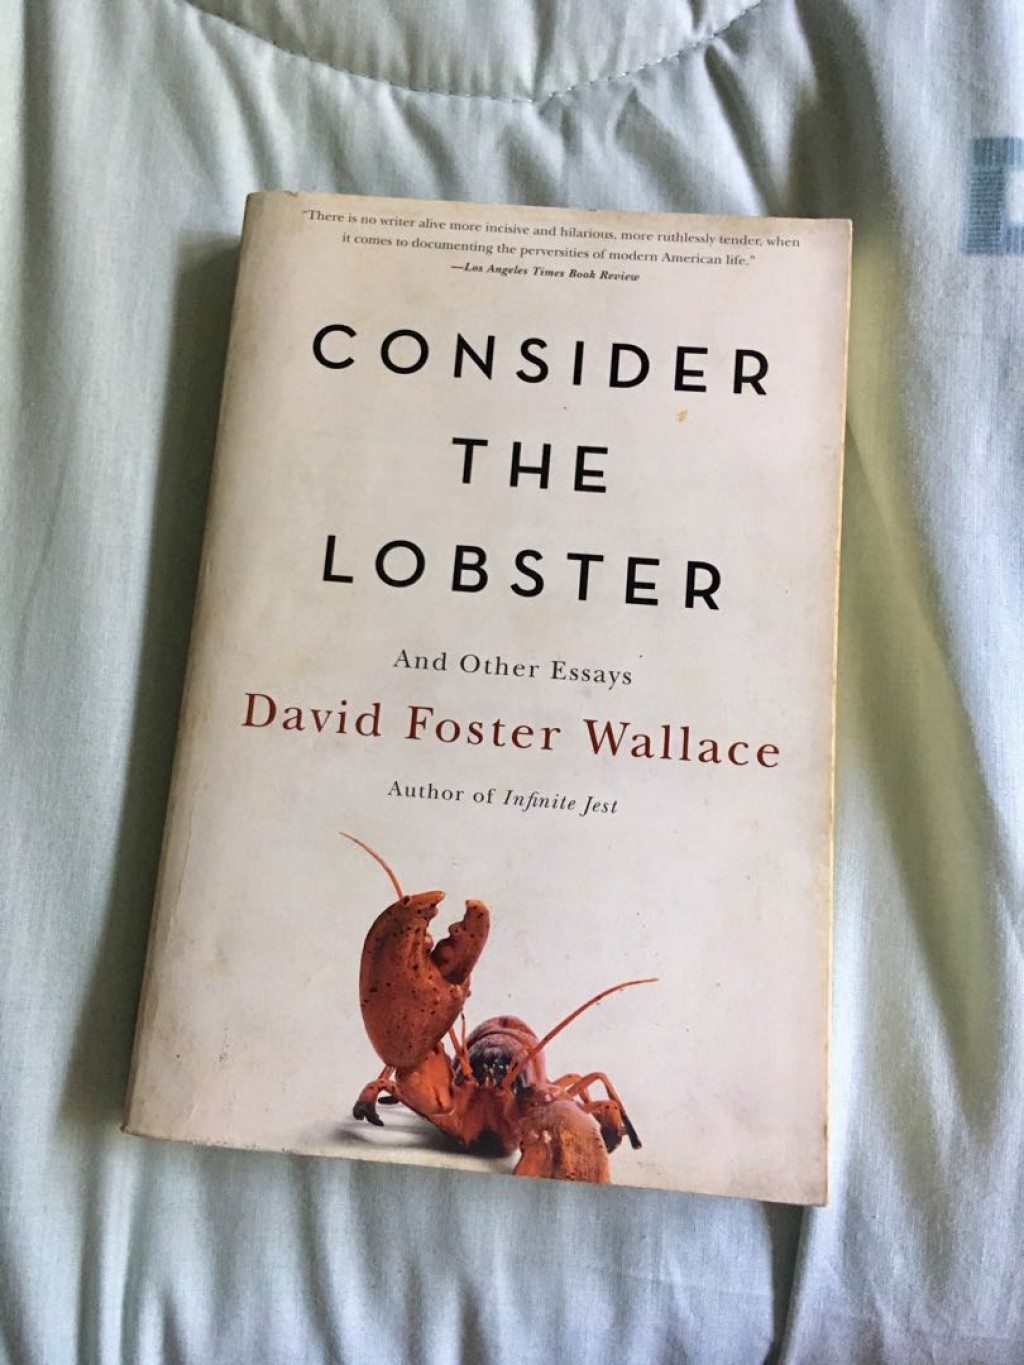 019 Consider The Lobster Essay Example By David Foster Wallace 1522206669 D4e499d5 Exceptional Rhetorical Analysis Review Large